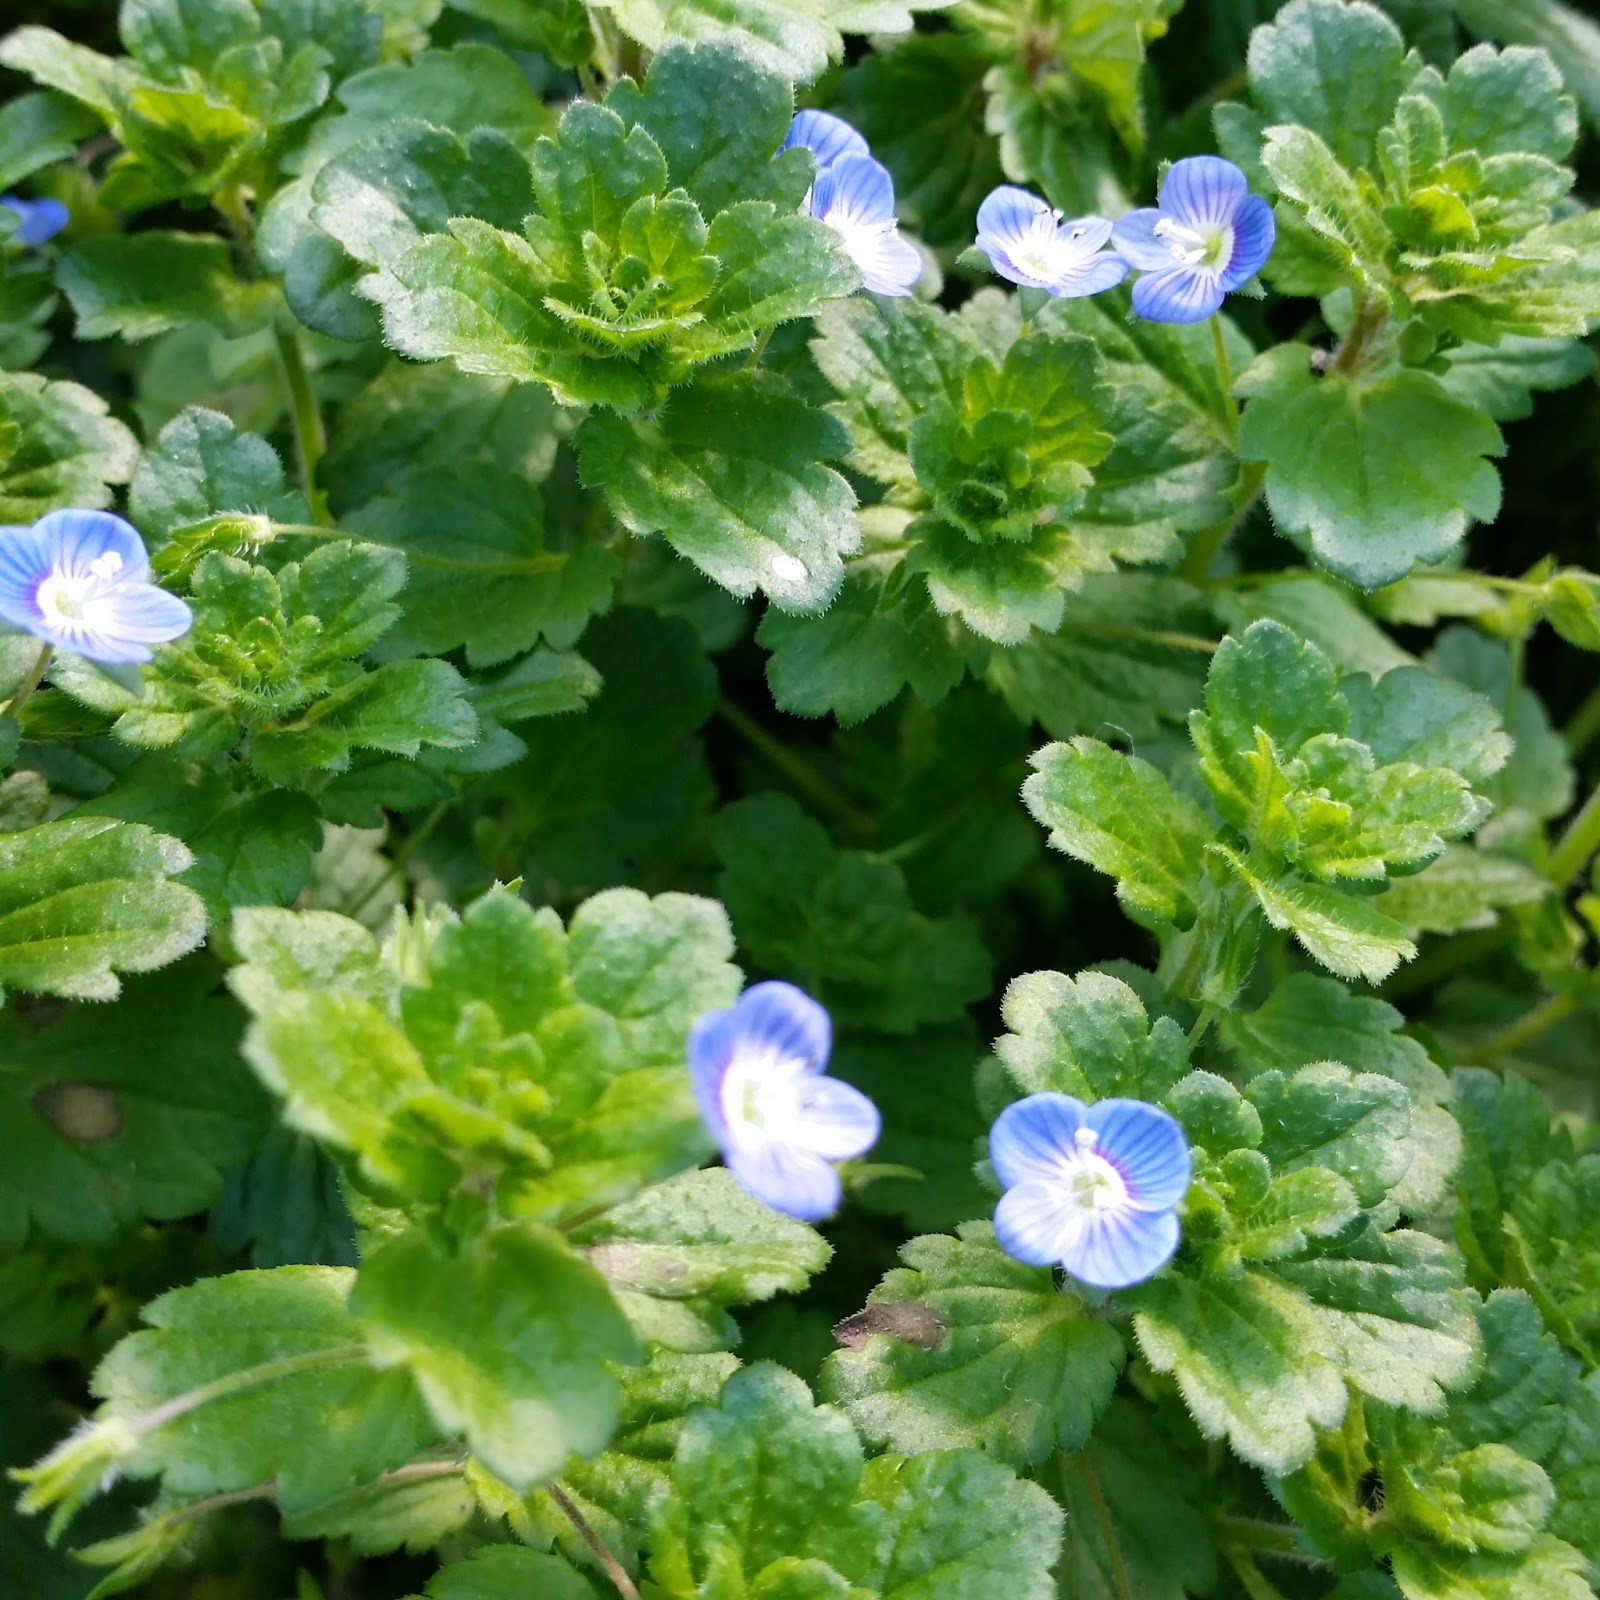 Soil beneath my fingers edible weeds plant identification i have always seen speedwell as a harmless weed and good ground cover i now realise until now it can be a nourishing eat and have medicinal qualities izmirmasajfo